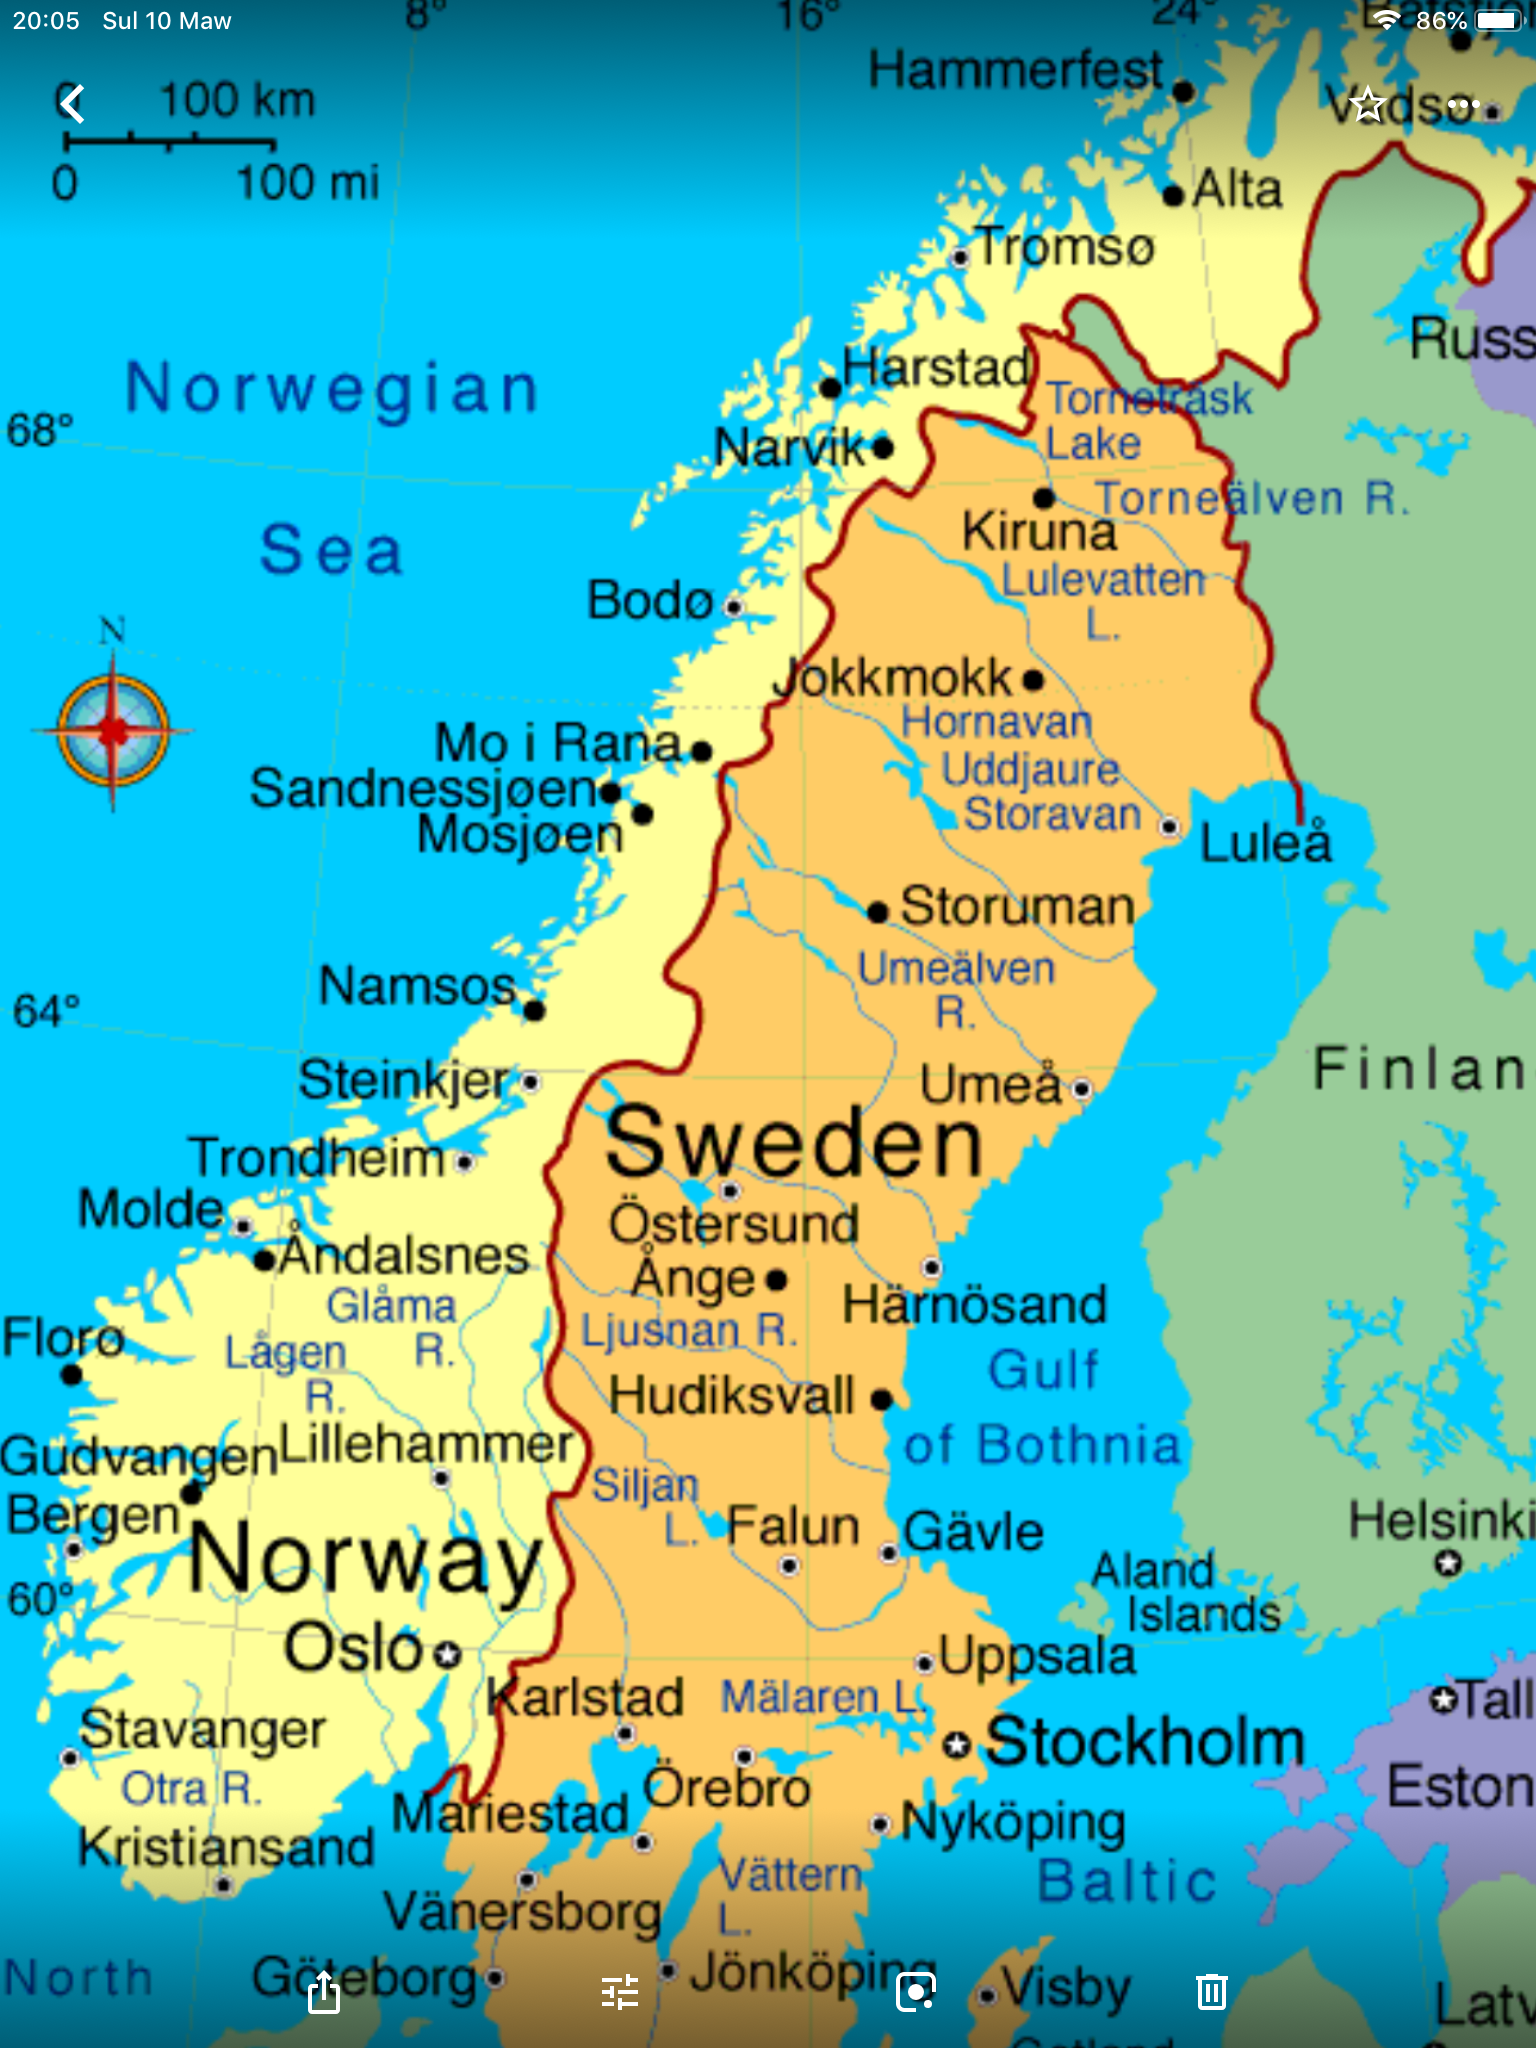 Pin By Greg Johnson On X902 Sweden Travel Norway Sweden Finland Norway Map